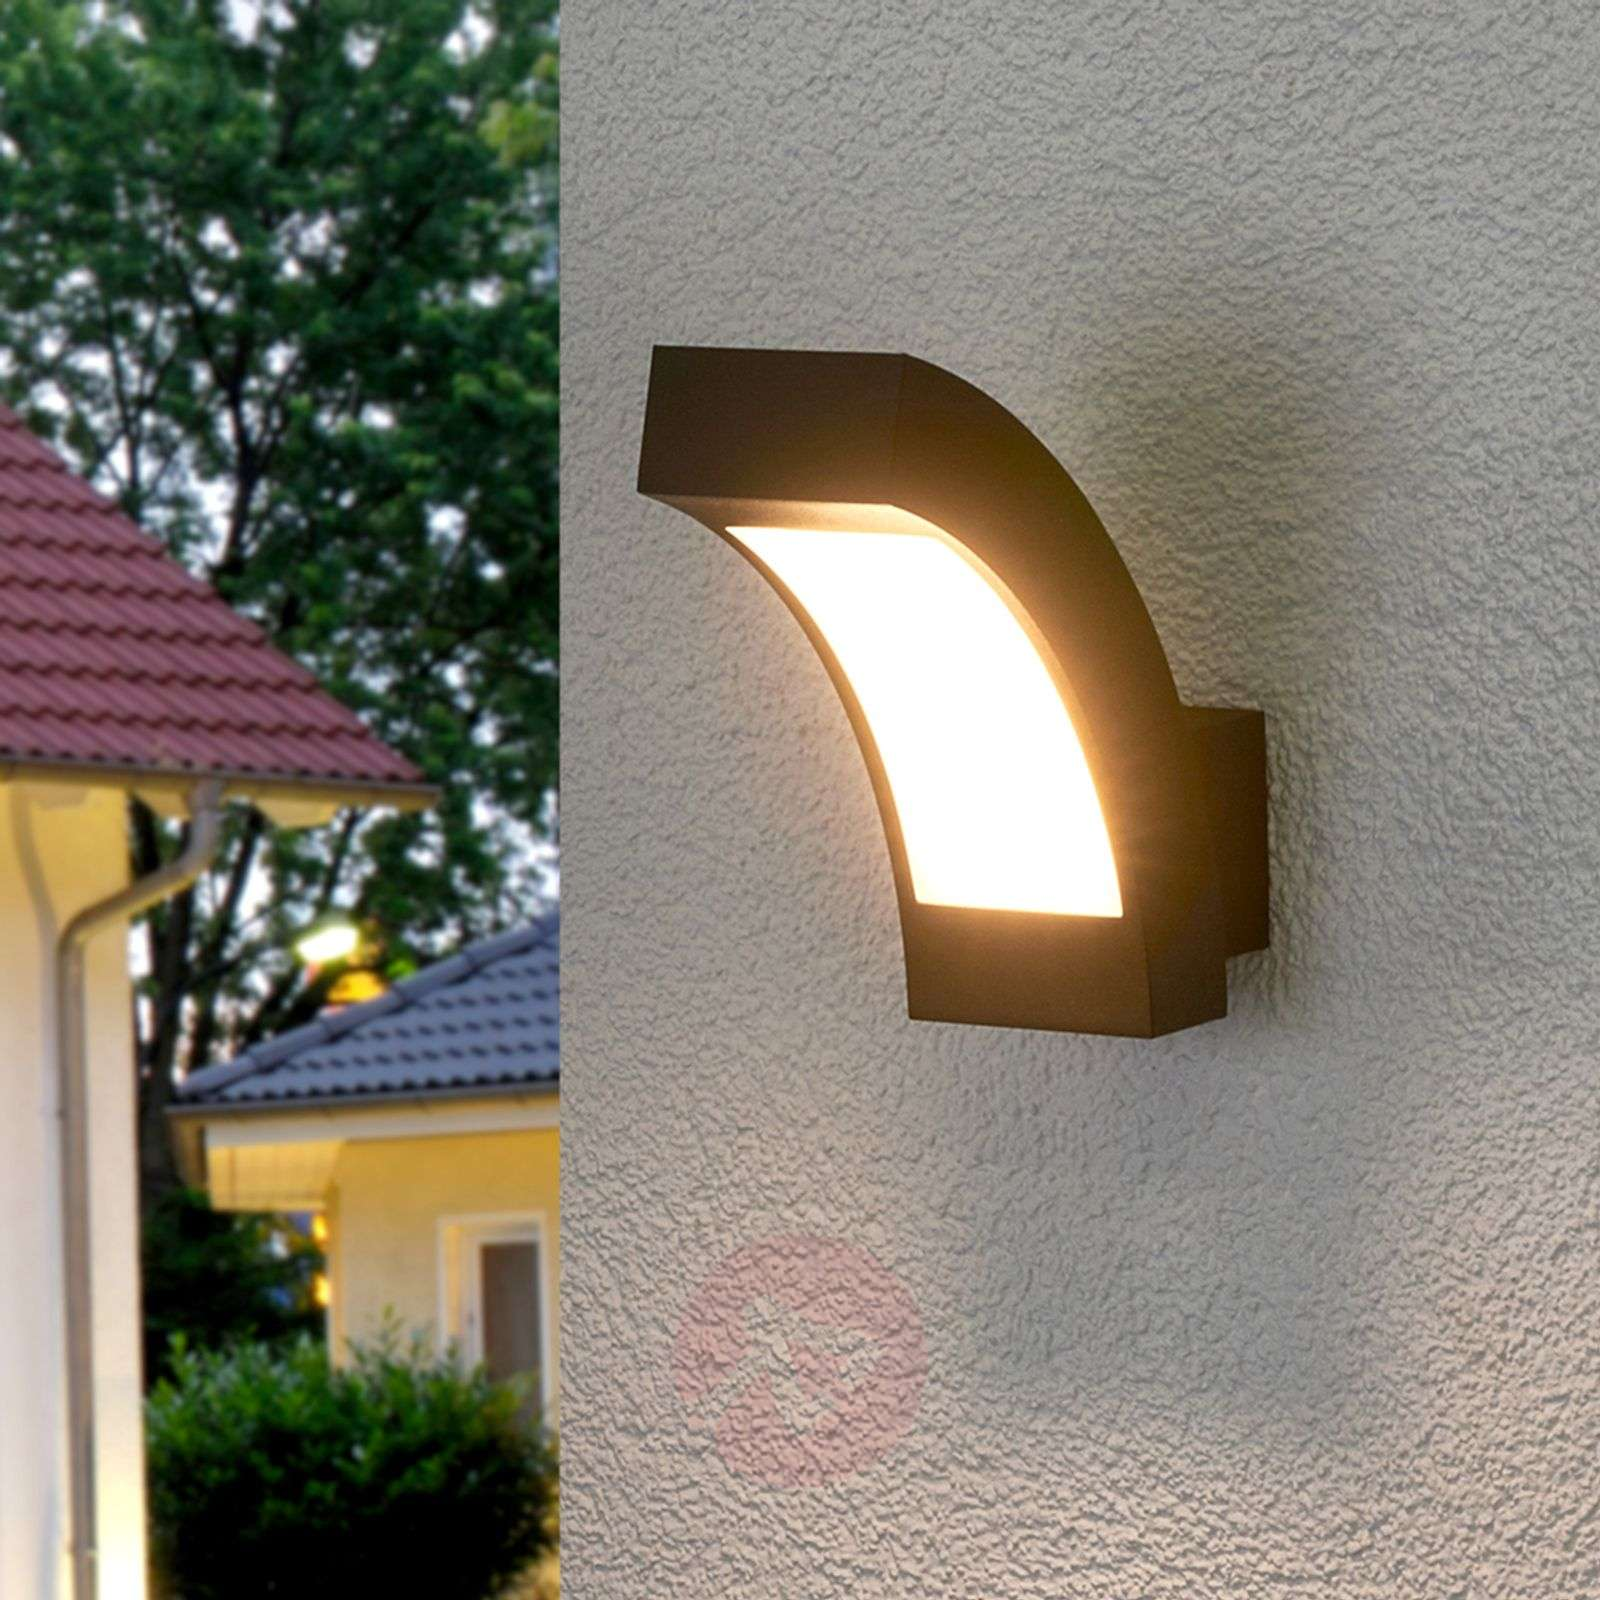 Lennik LED Exterior Wall Lamp, IP54-9619002-04